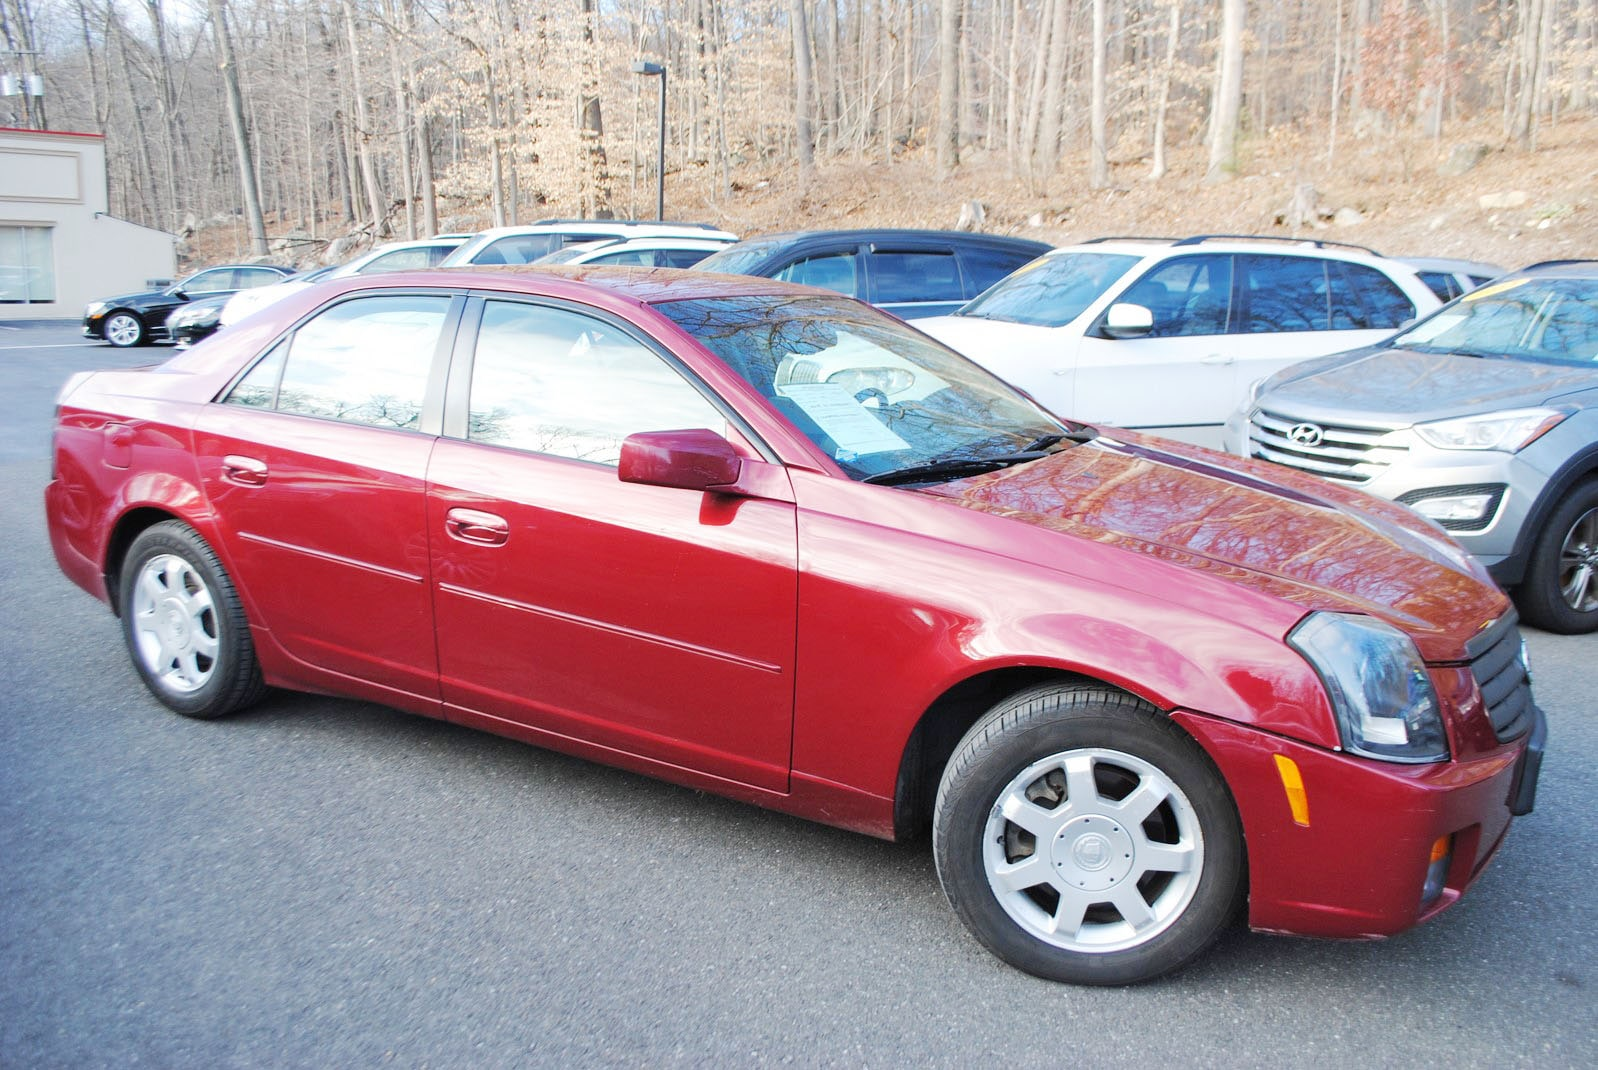 used 2004 cadillac cts for sale west milford nj. Black Bedroom Furniture Sets. Home Design Ideas